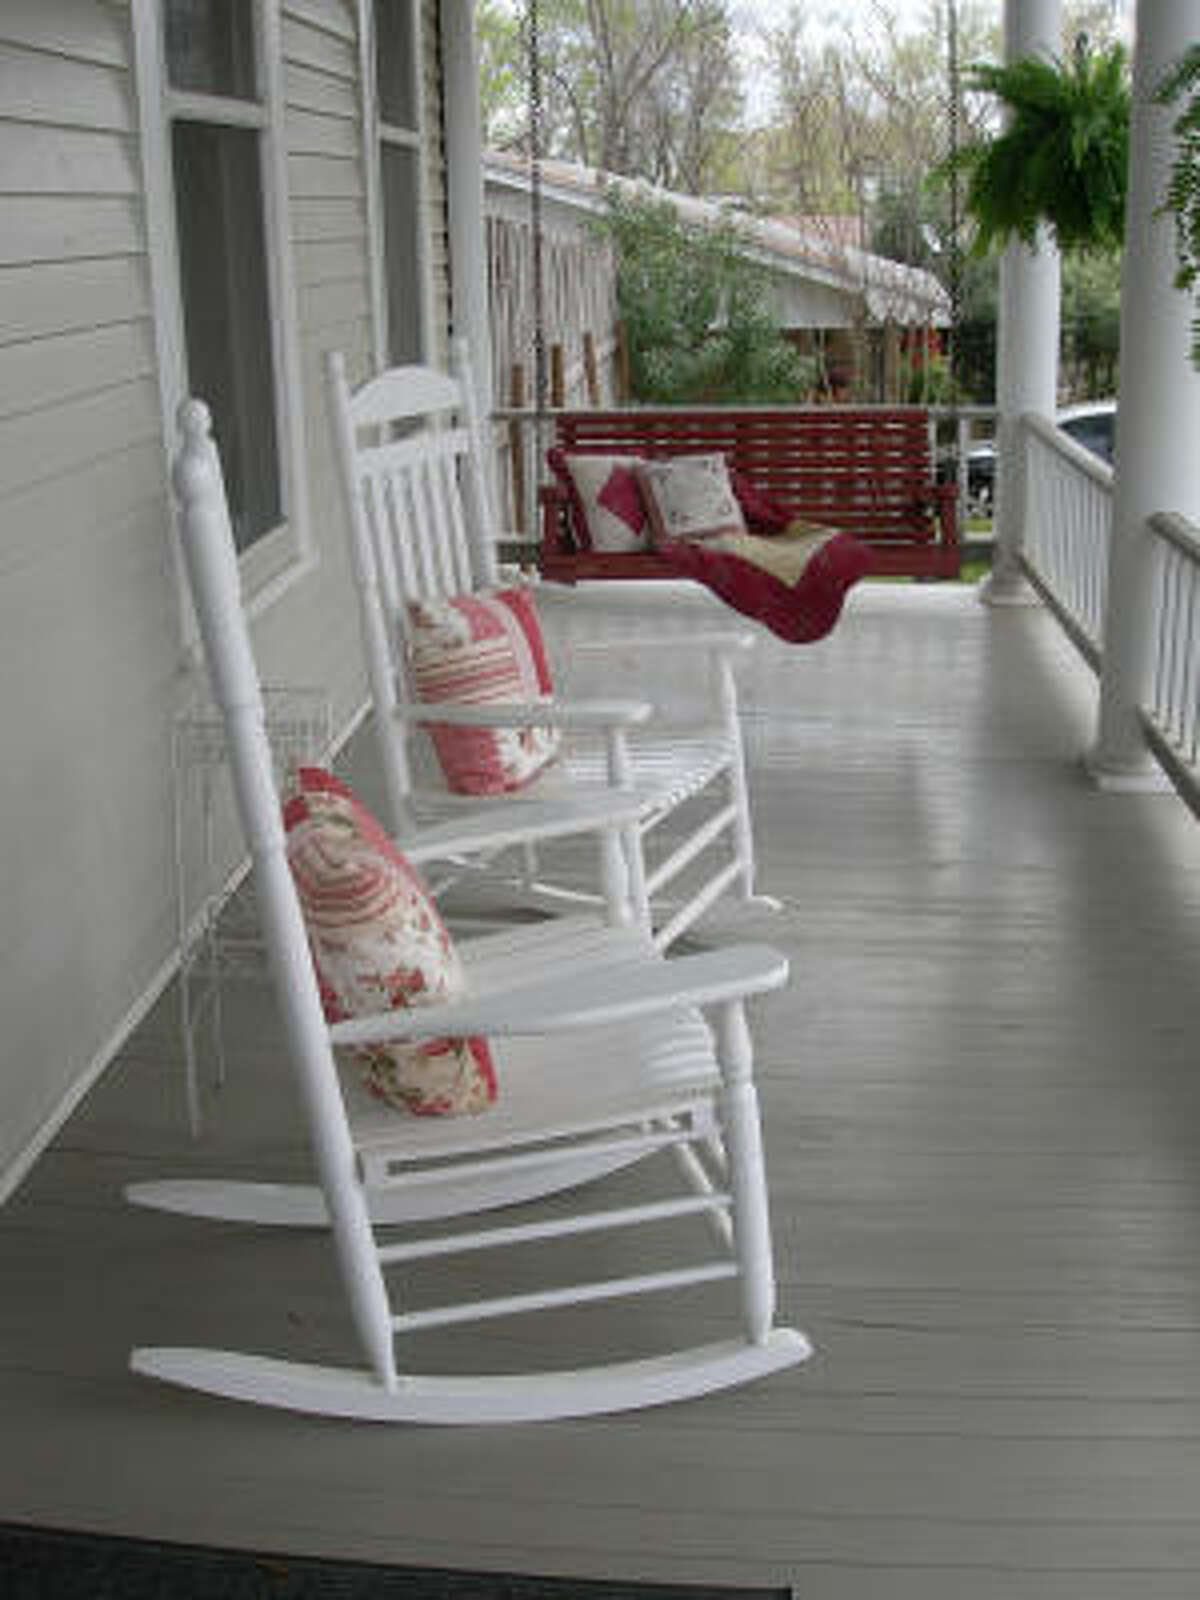 Guests at Palestine's Fig Tree Manor can relax in rocking chairs on a porch. The inn combines overnight accommodations and a restaurant.